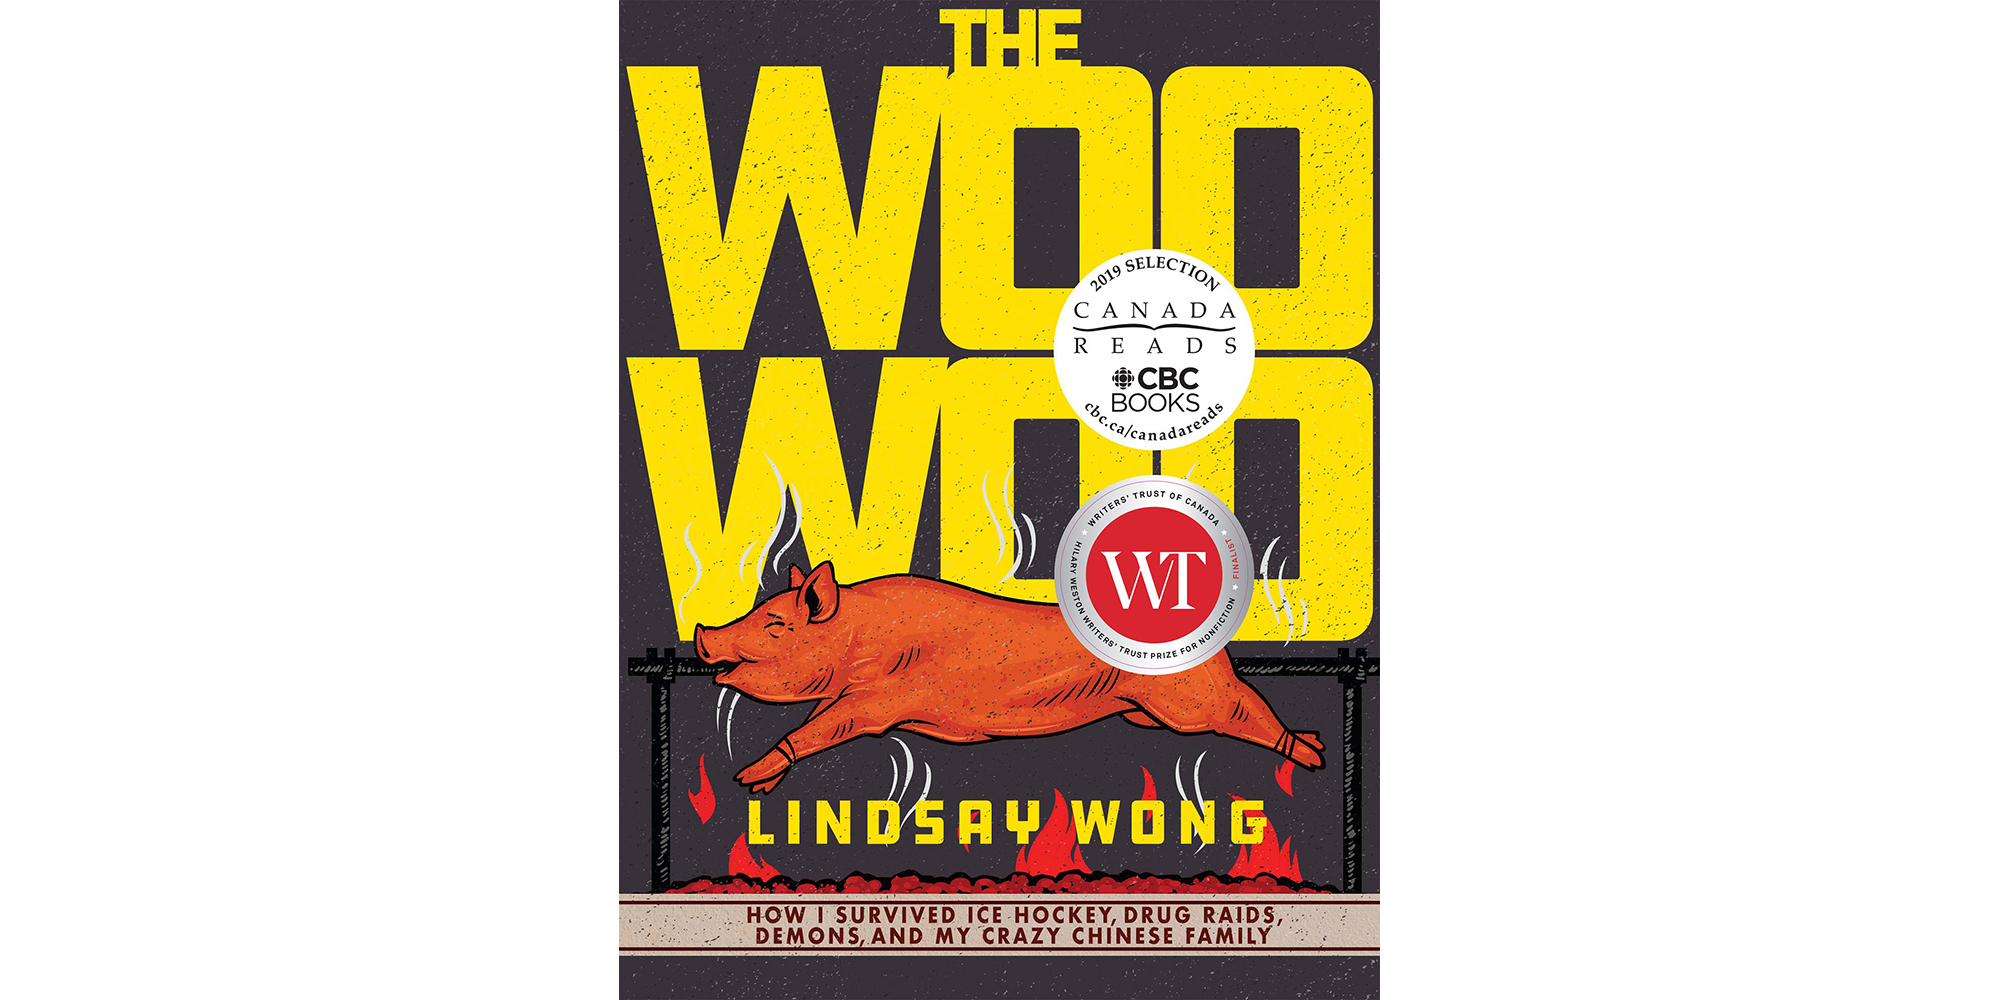 Cover of The Woo Woo, by Lindsay Wong